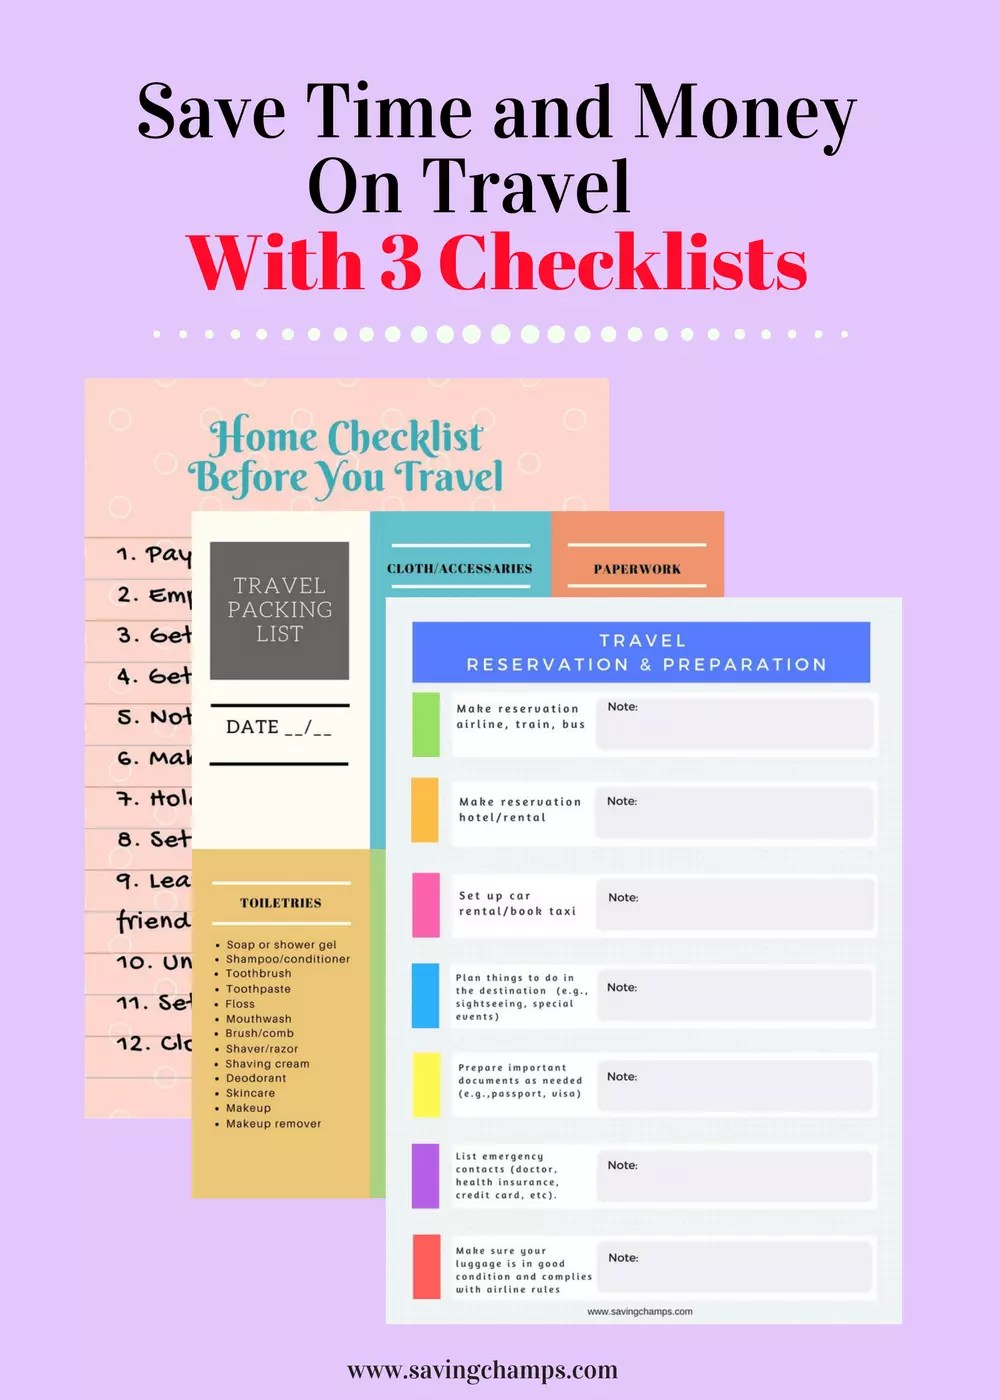 travel checklists for saving time and money on travel